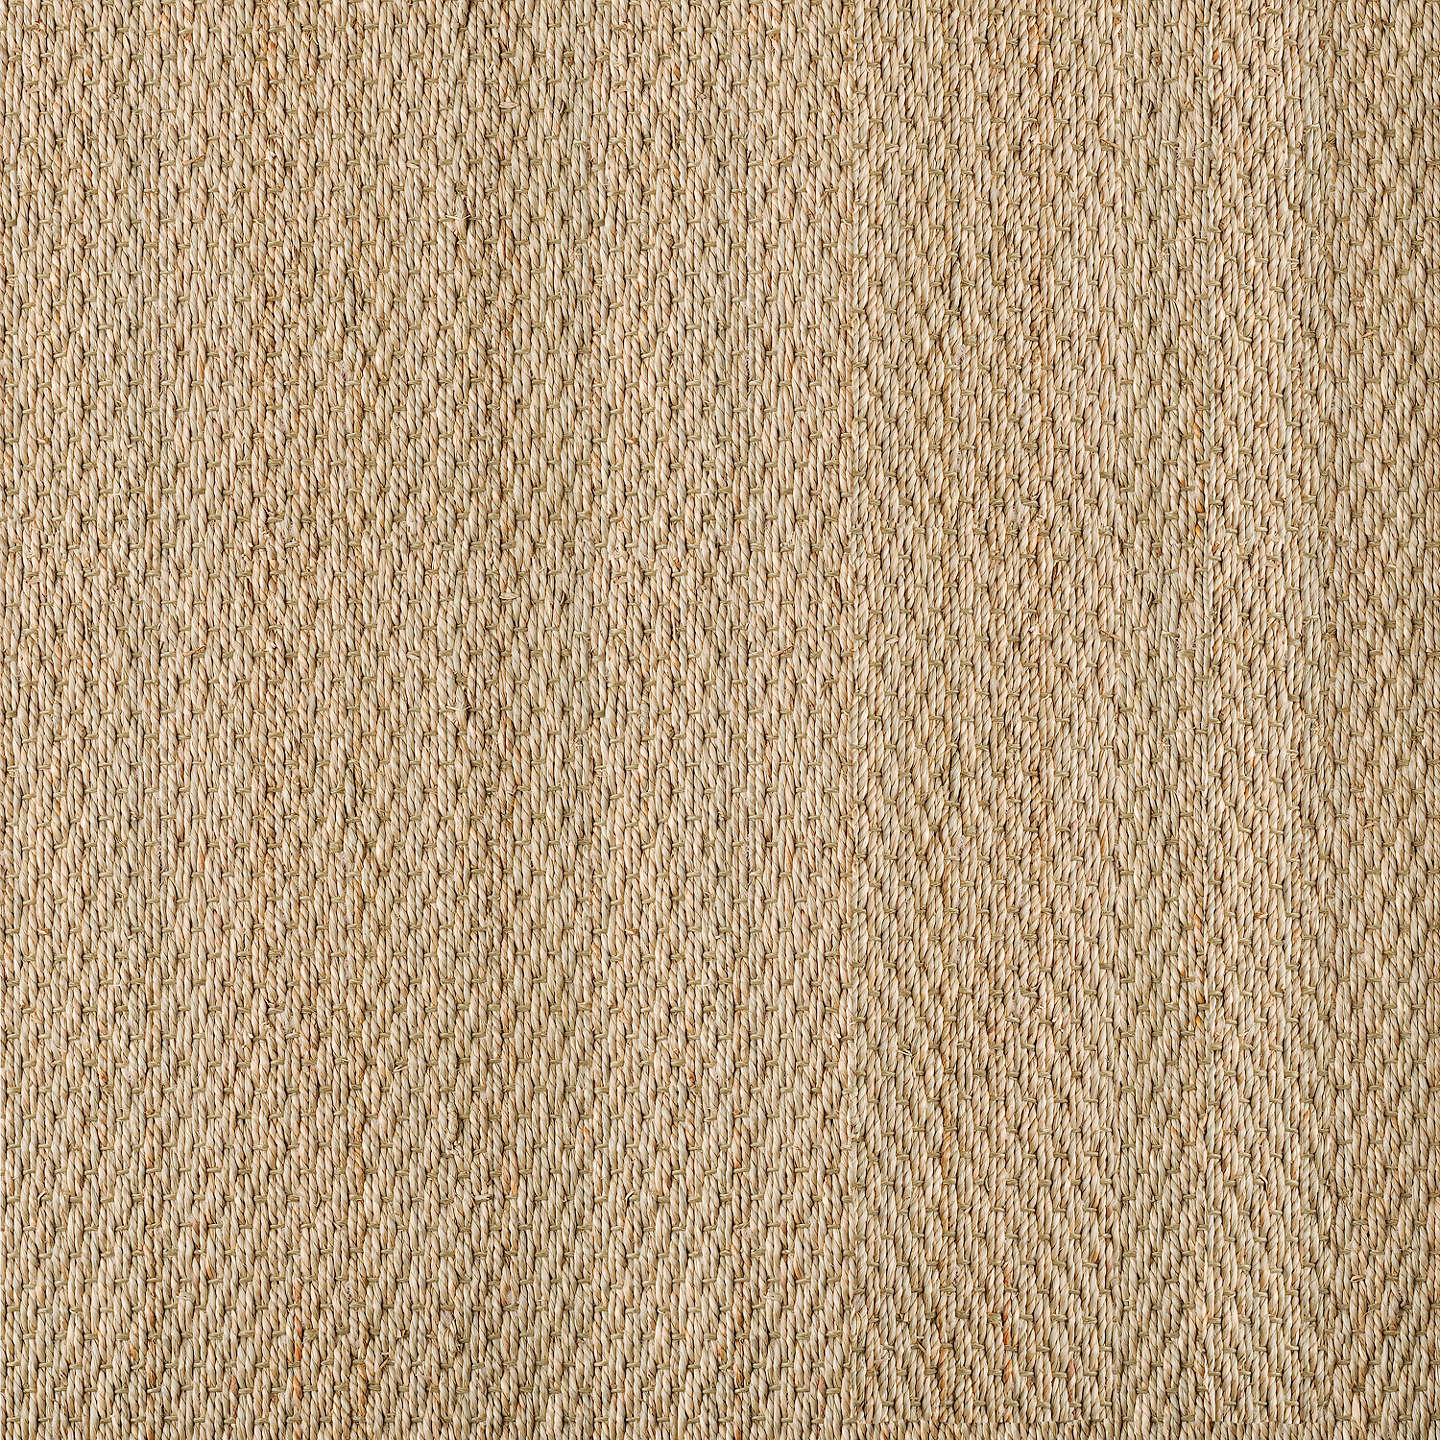 Alternative Flooring Seagrass Flatweave Carpet At John Lewis